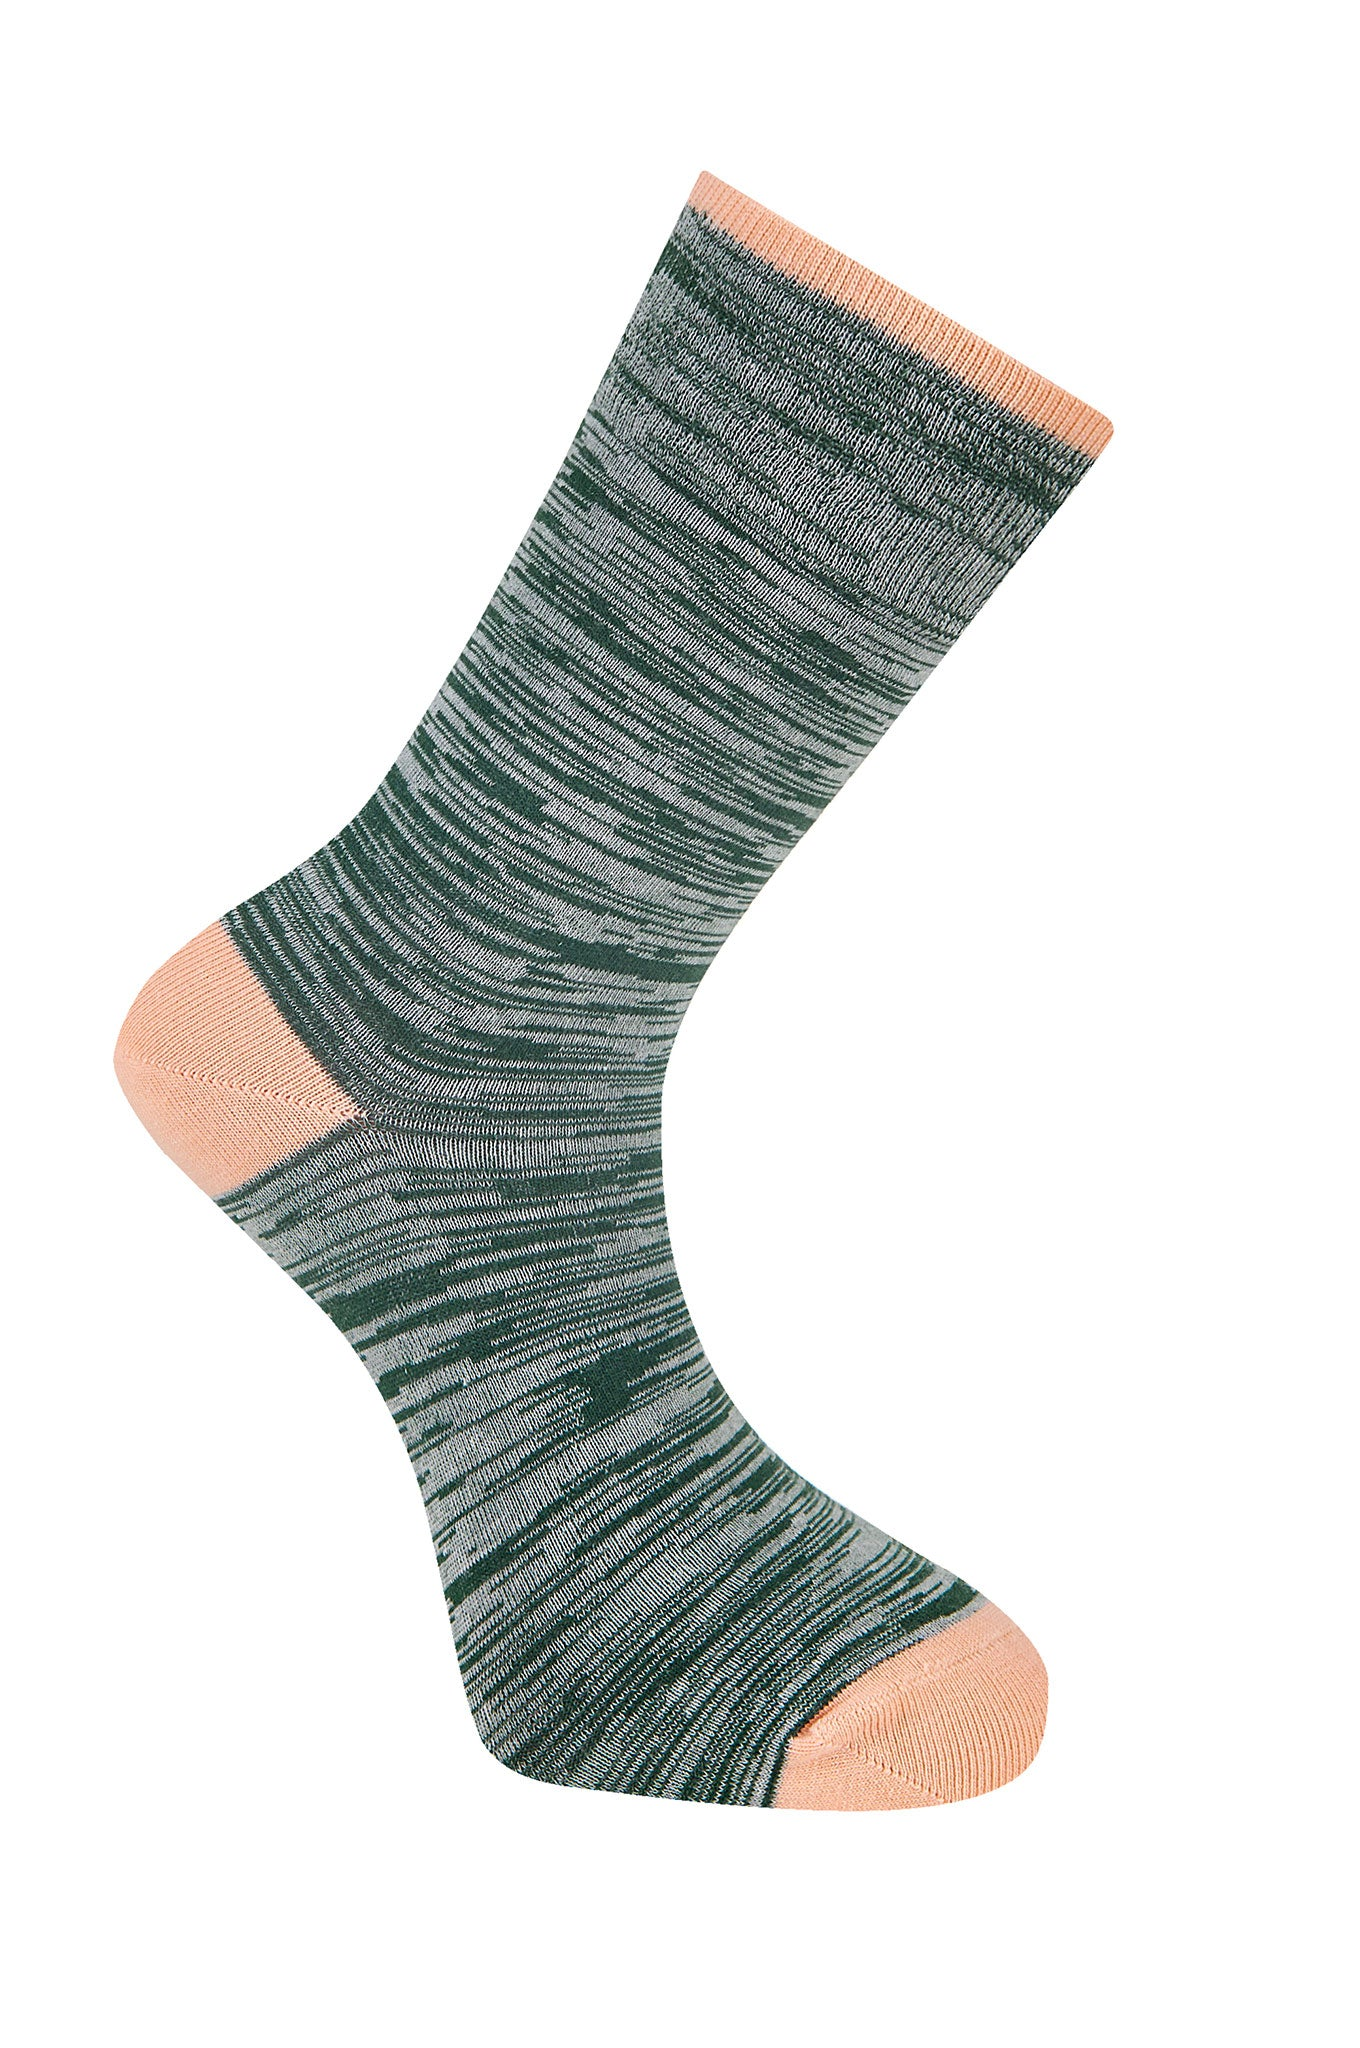 Space Dye Emerald Organic Cotton Socks